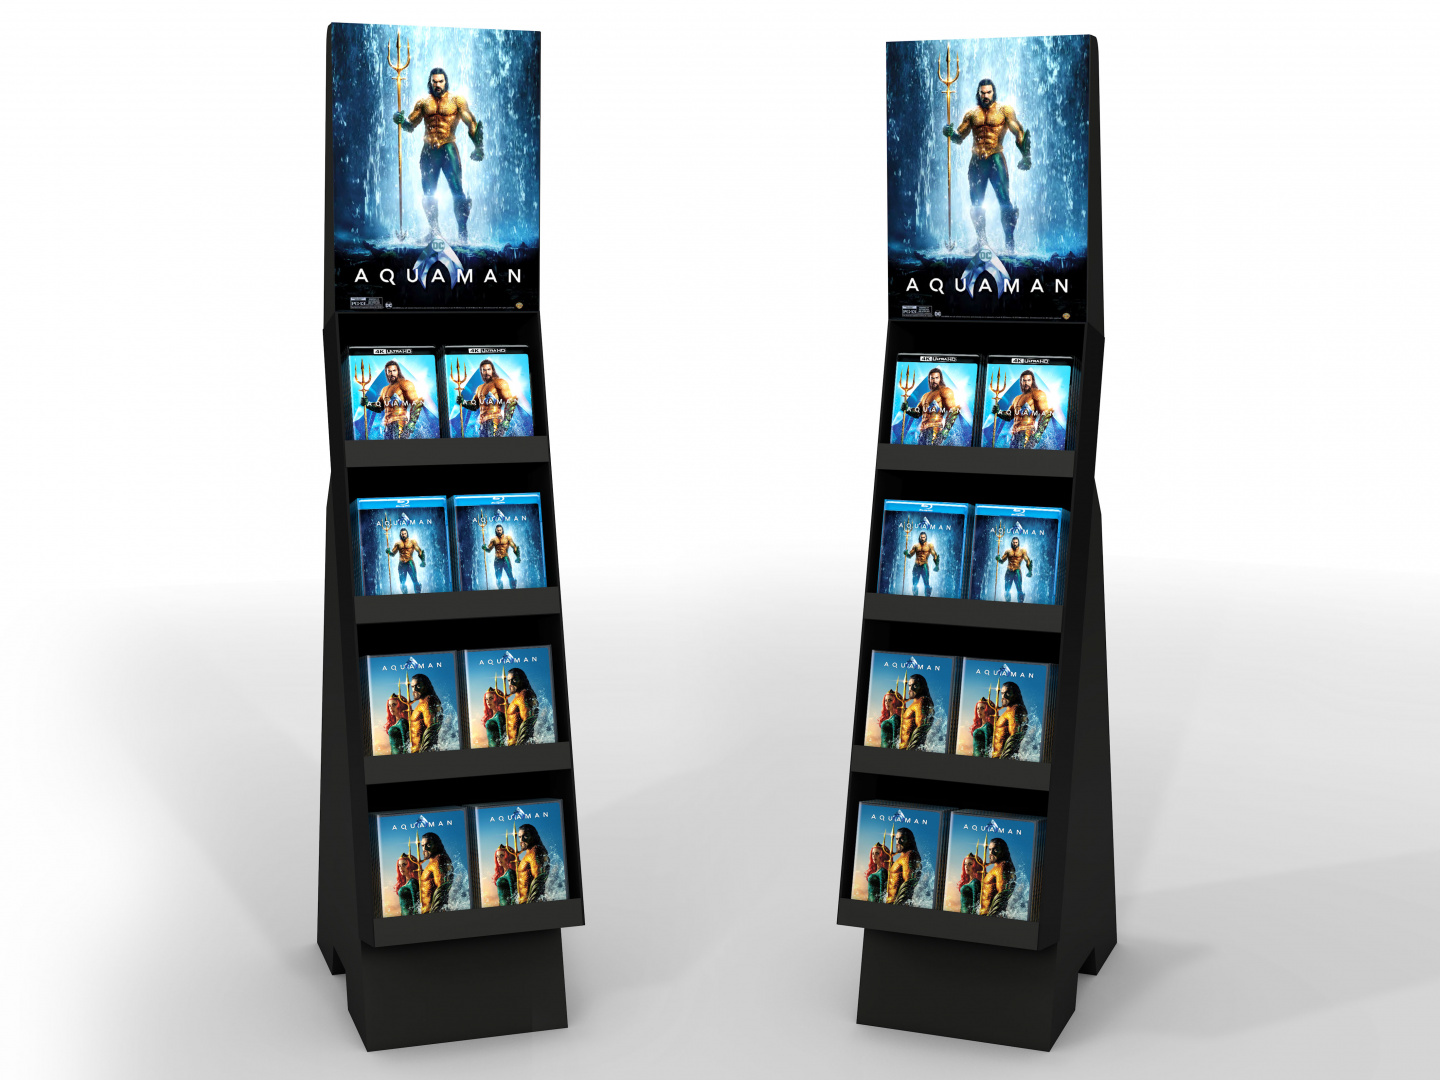 Image for Aquaman Home Entertainment Shoppable Floor Display Non Event